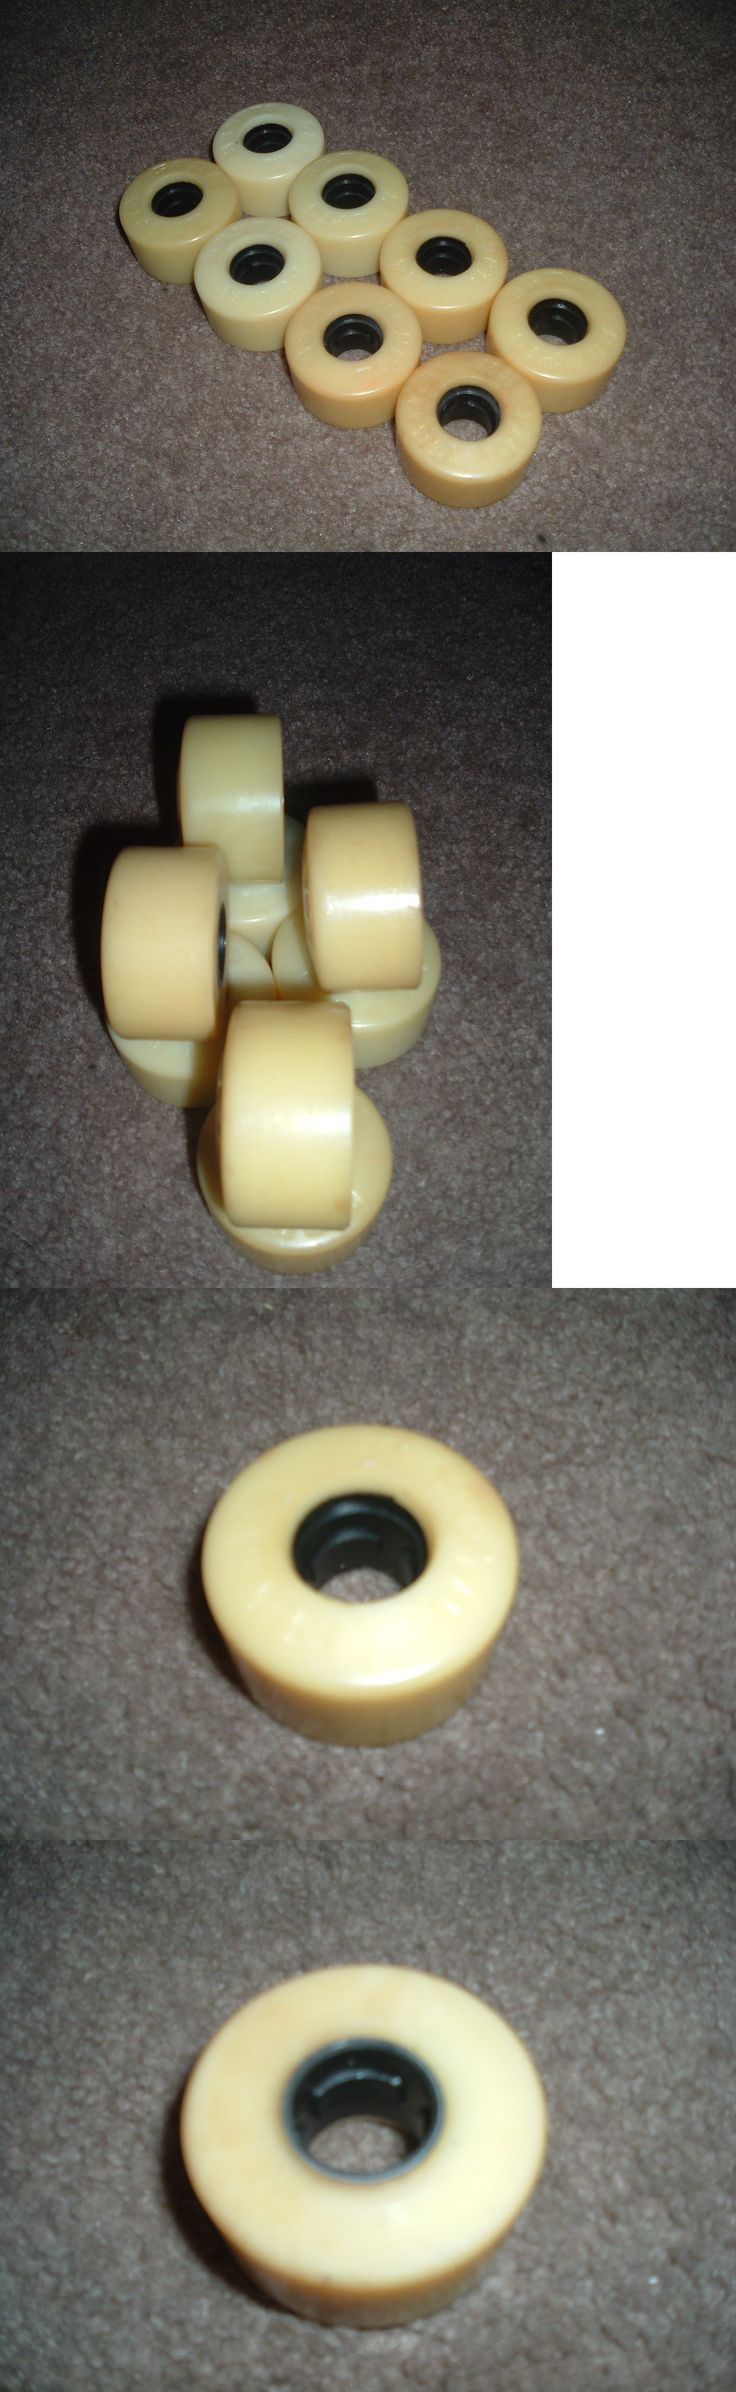 Indoor Roller Skating 165938: Rare Kryptonic White Hard Indoor Skate Wheels 58Mm X 34Mm 96A No Box Yellowed -> BUY IT NOW ONLY: $84.99 on eBay!